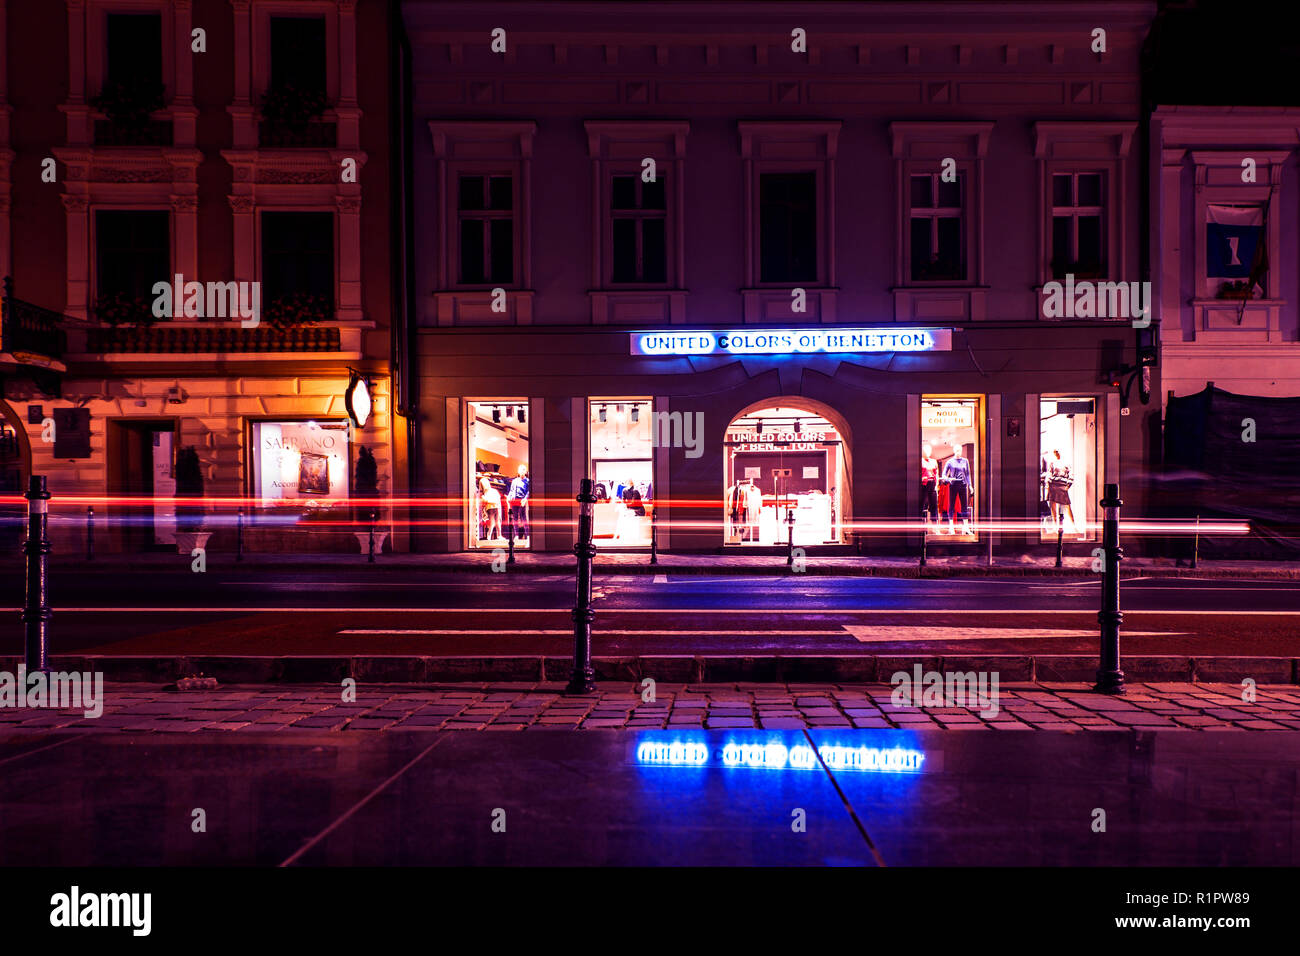 Brasov, ROMANIA - October 21, 2018: United Colors of Benetton store across the Old Town Square of Brasov. Night scene with neon lights and light trail - Stock Image